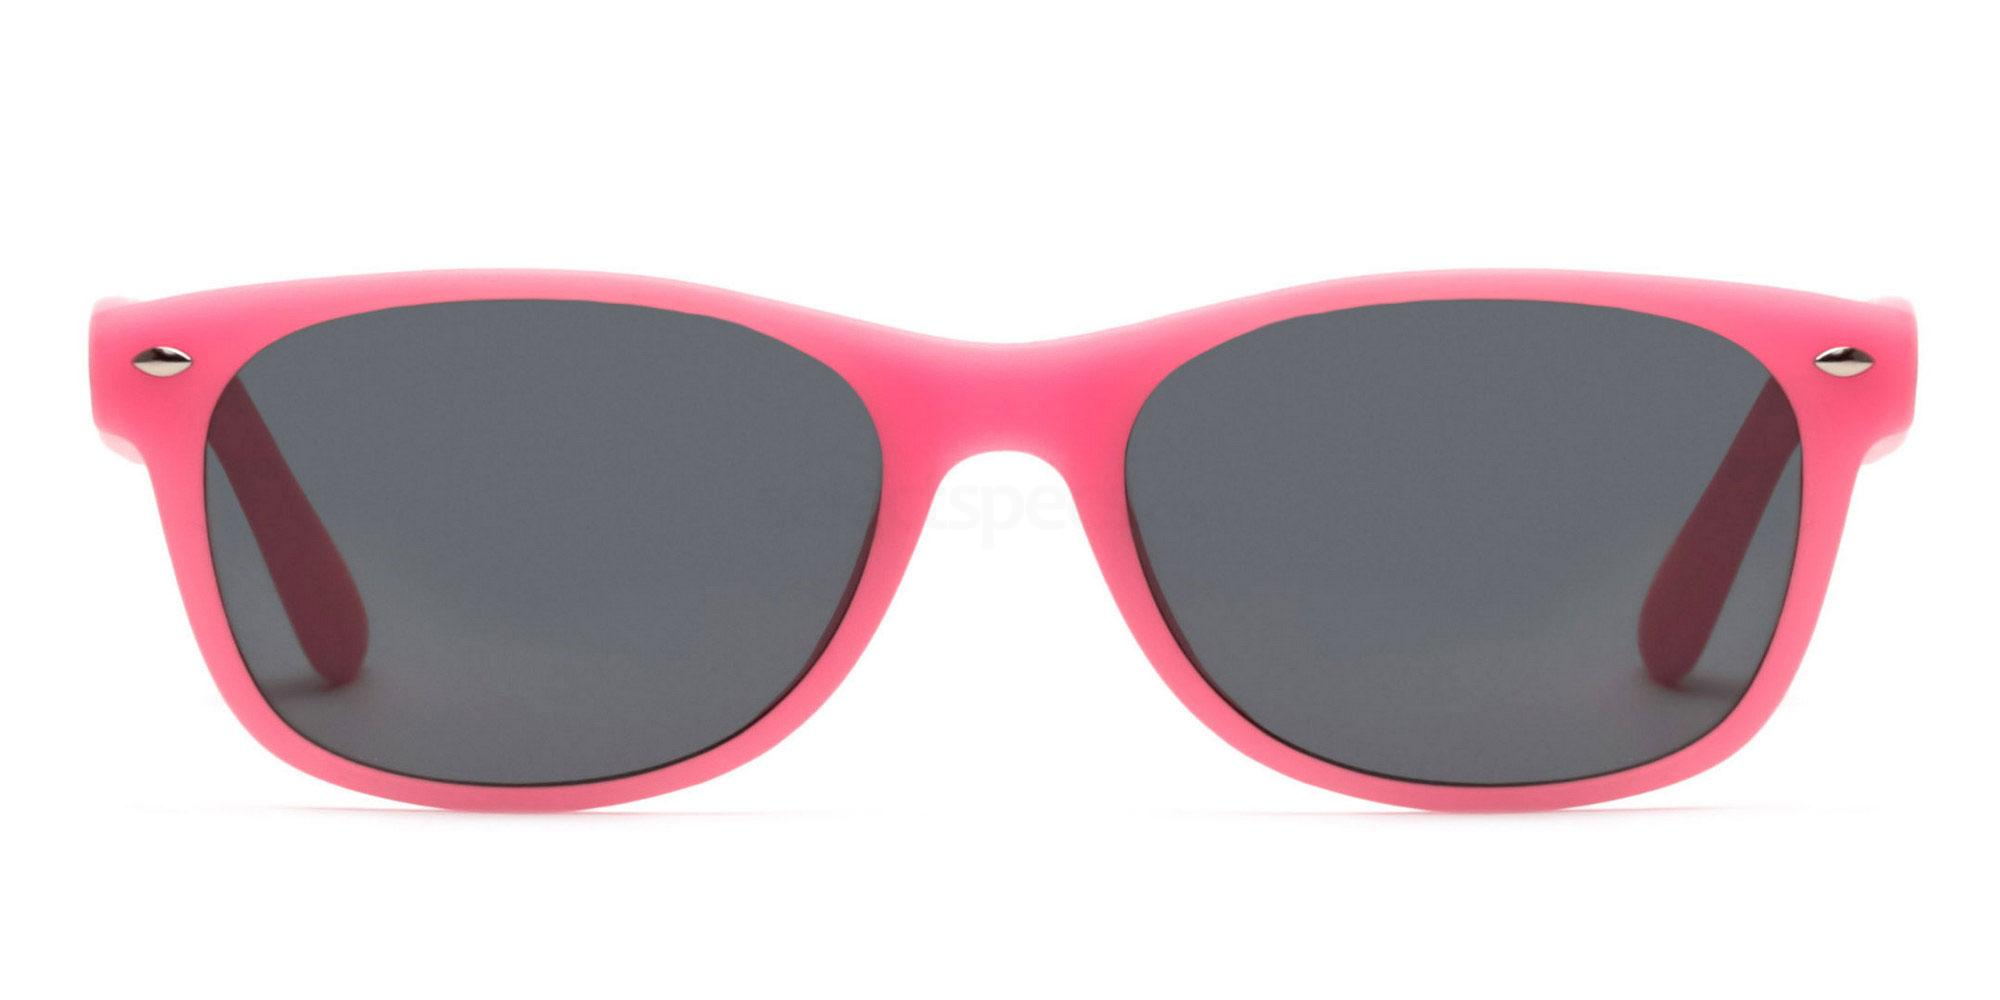 61ff50d0d8 Savannah S8122 - Pink (Sunglasses) sunglasses